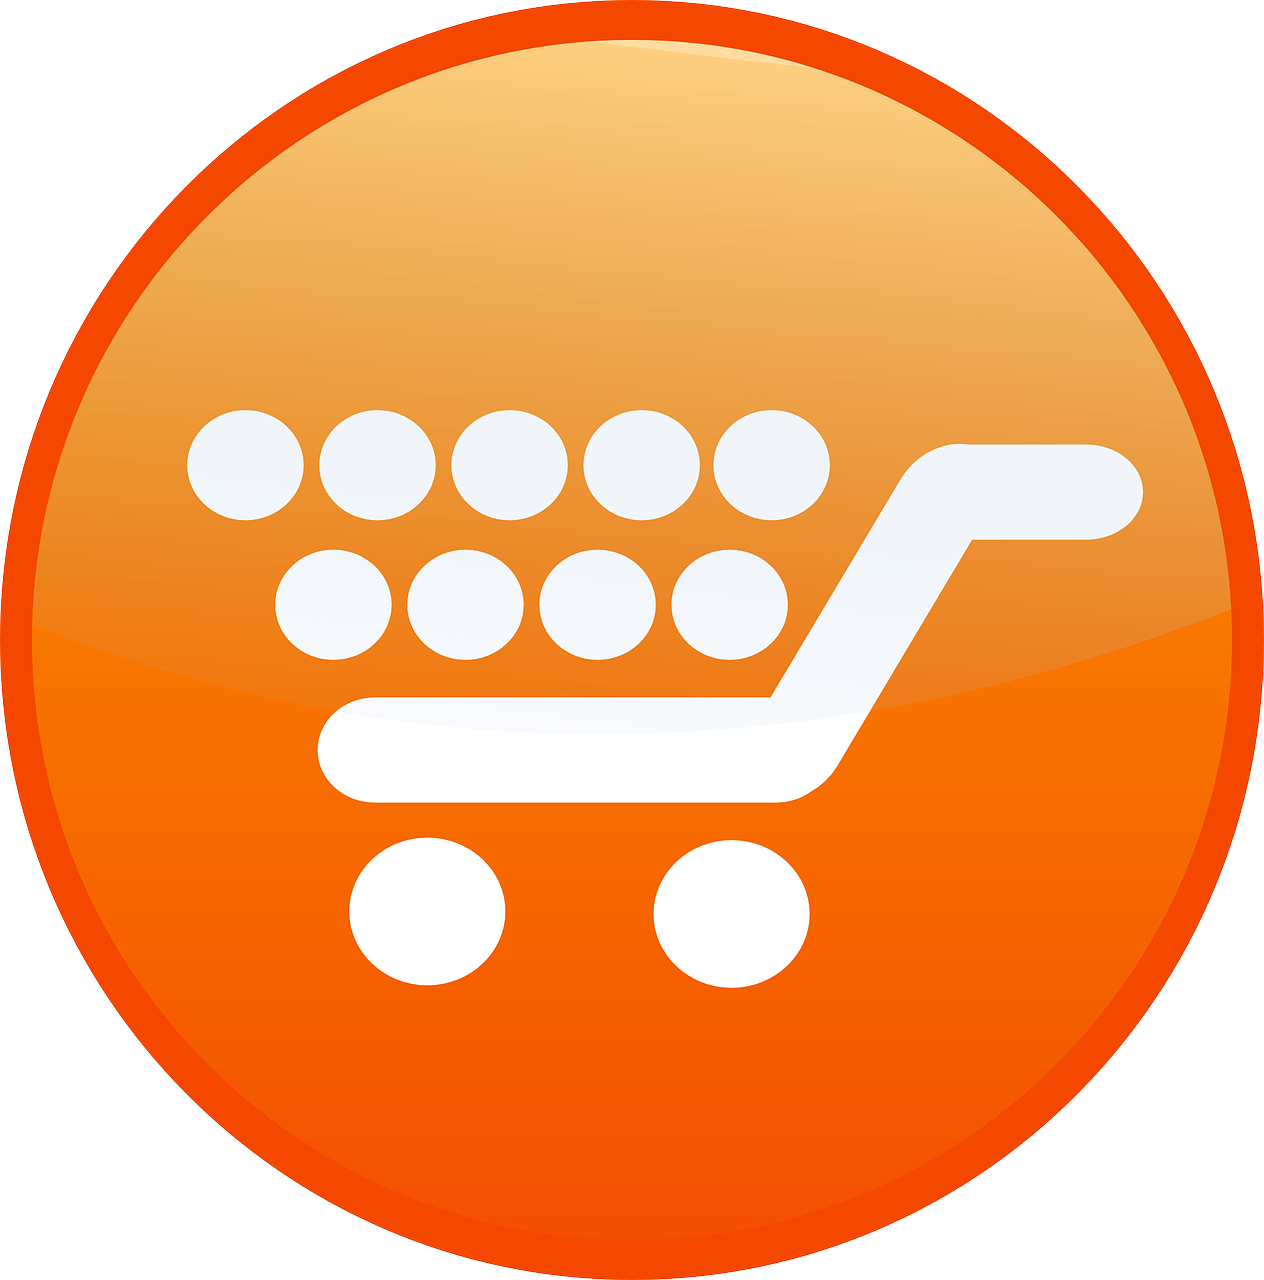 The Newbie's Guide To Ecommerce: 4 Things You Need To Know